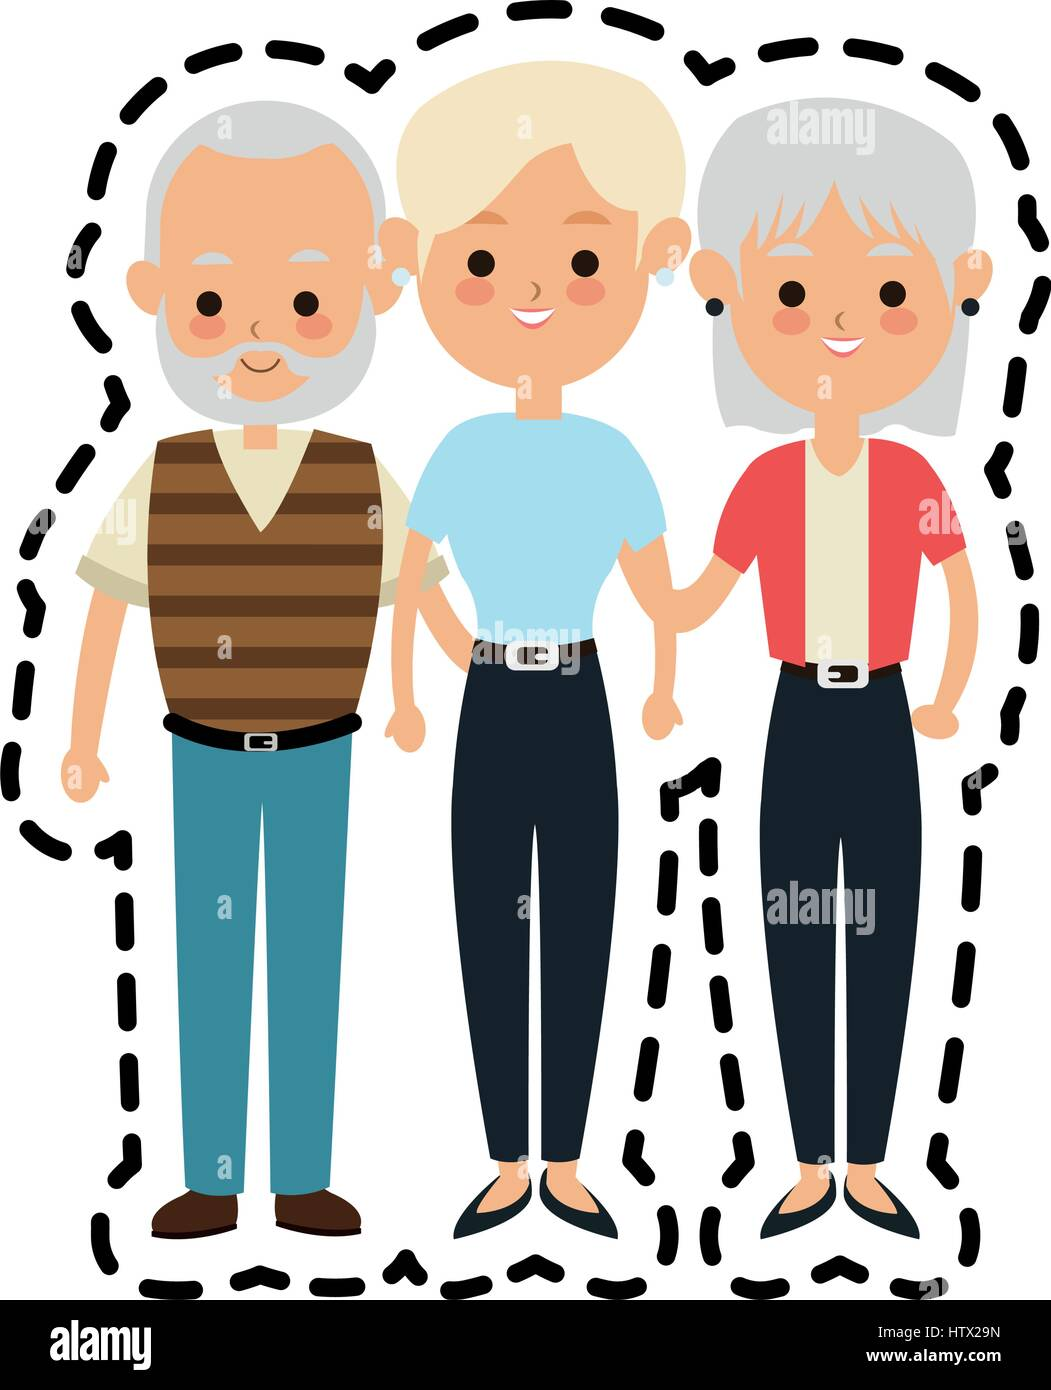 people or family members icon image  - Stock Vector